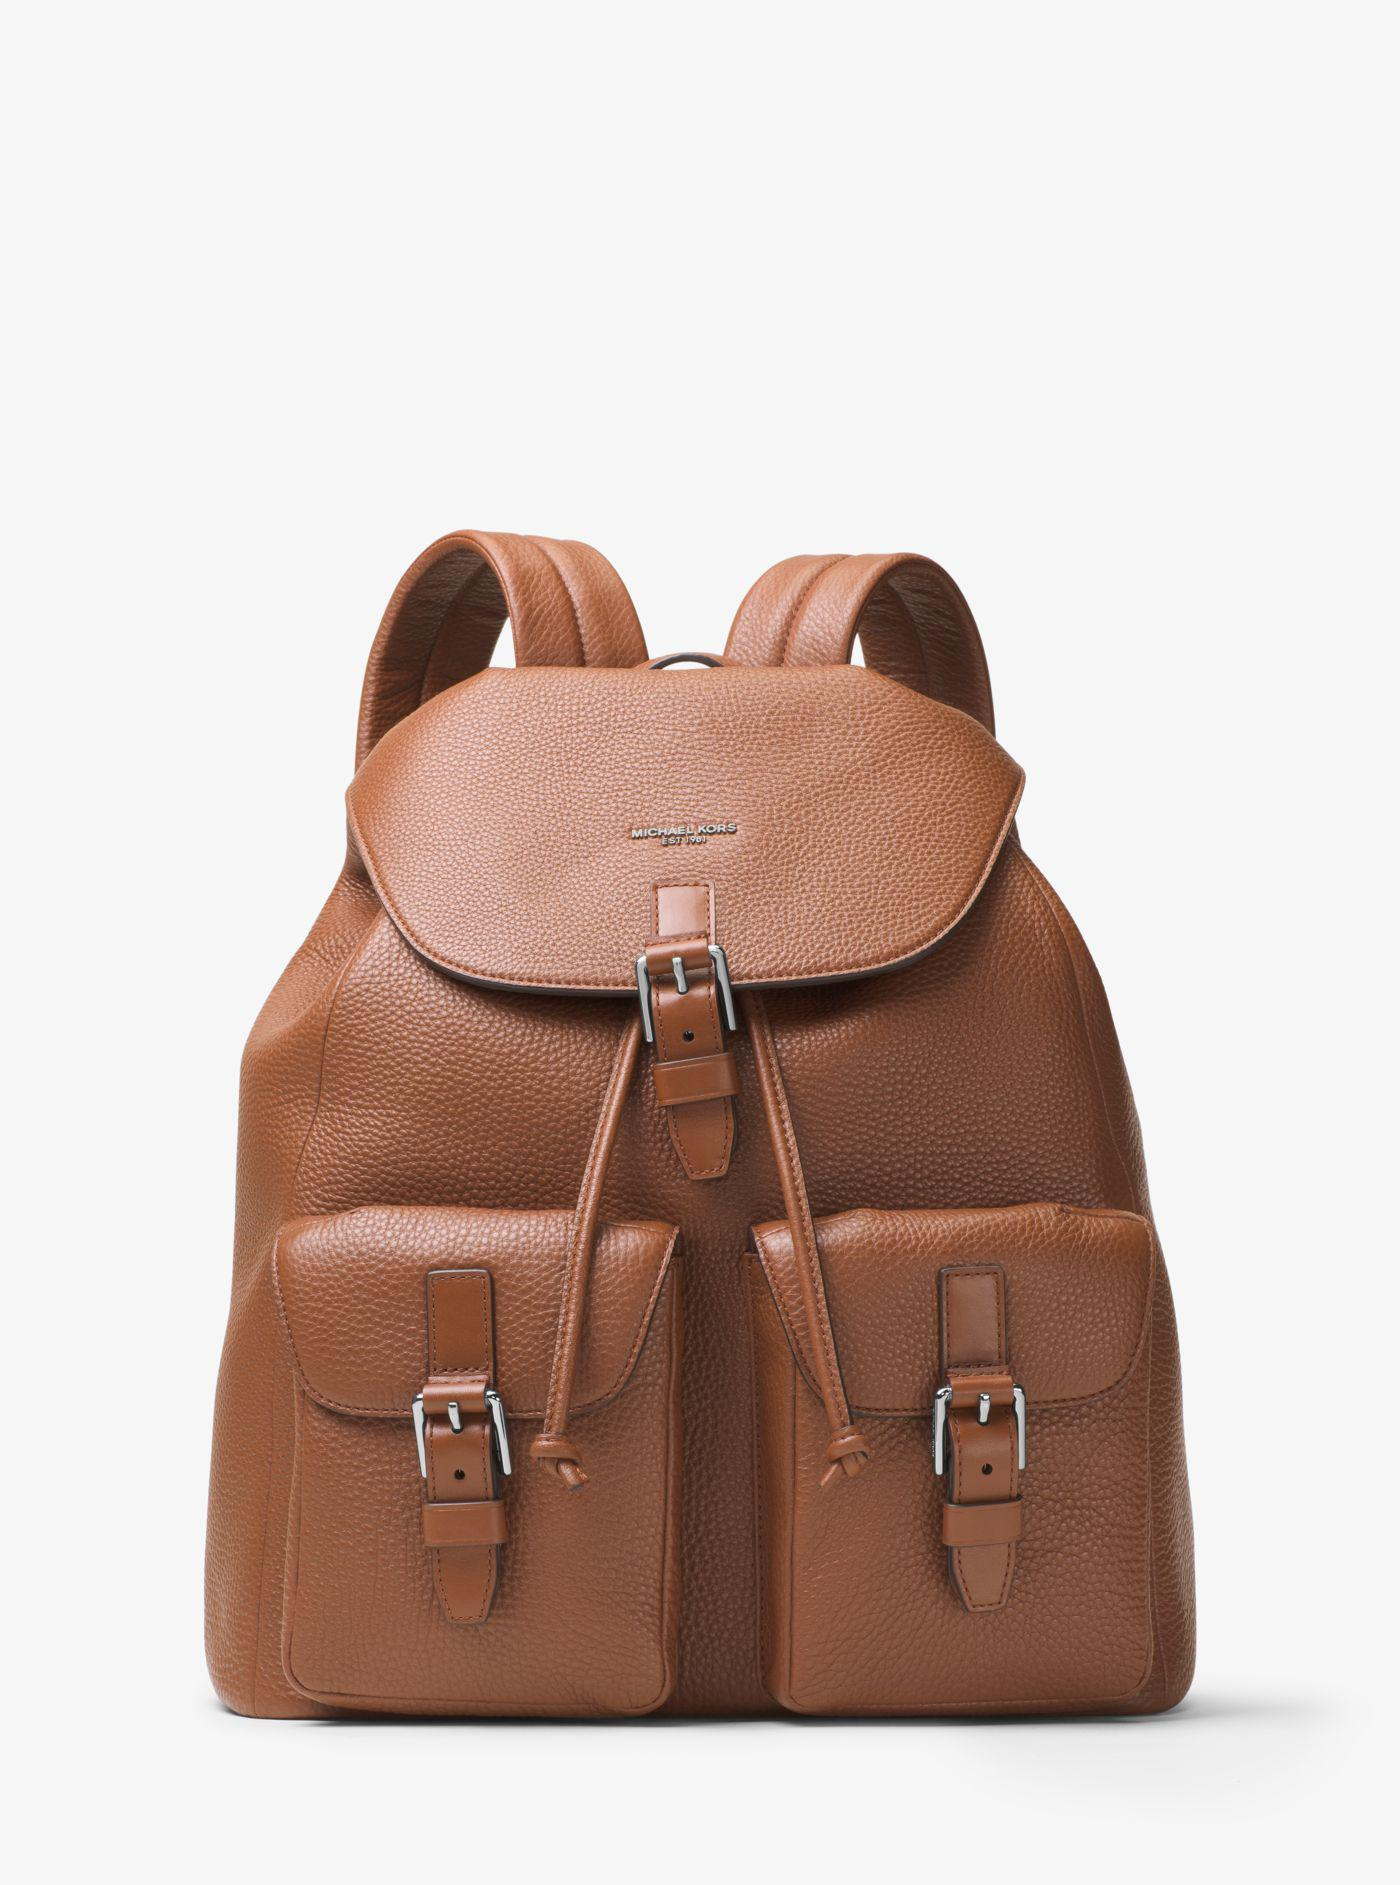 c97349c1b5b6 Lyst - Michael Kors Bryant Leather Backpack in Brown for Men